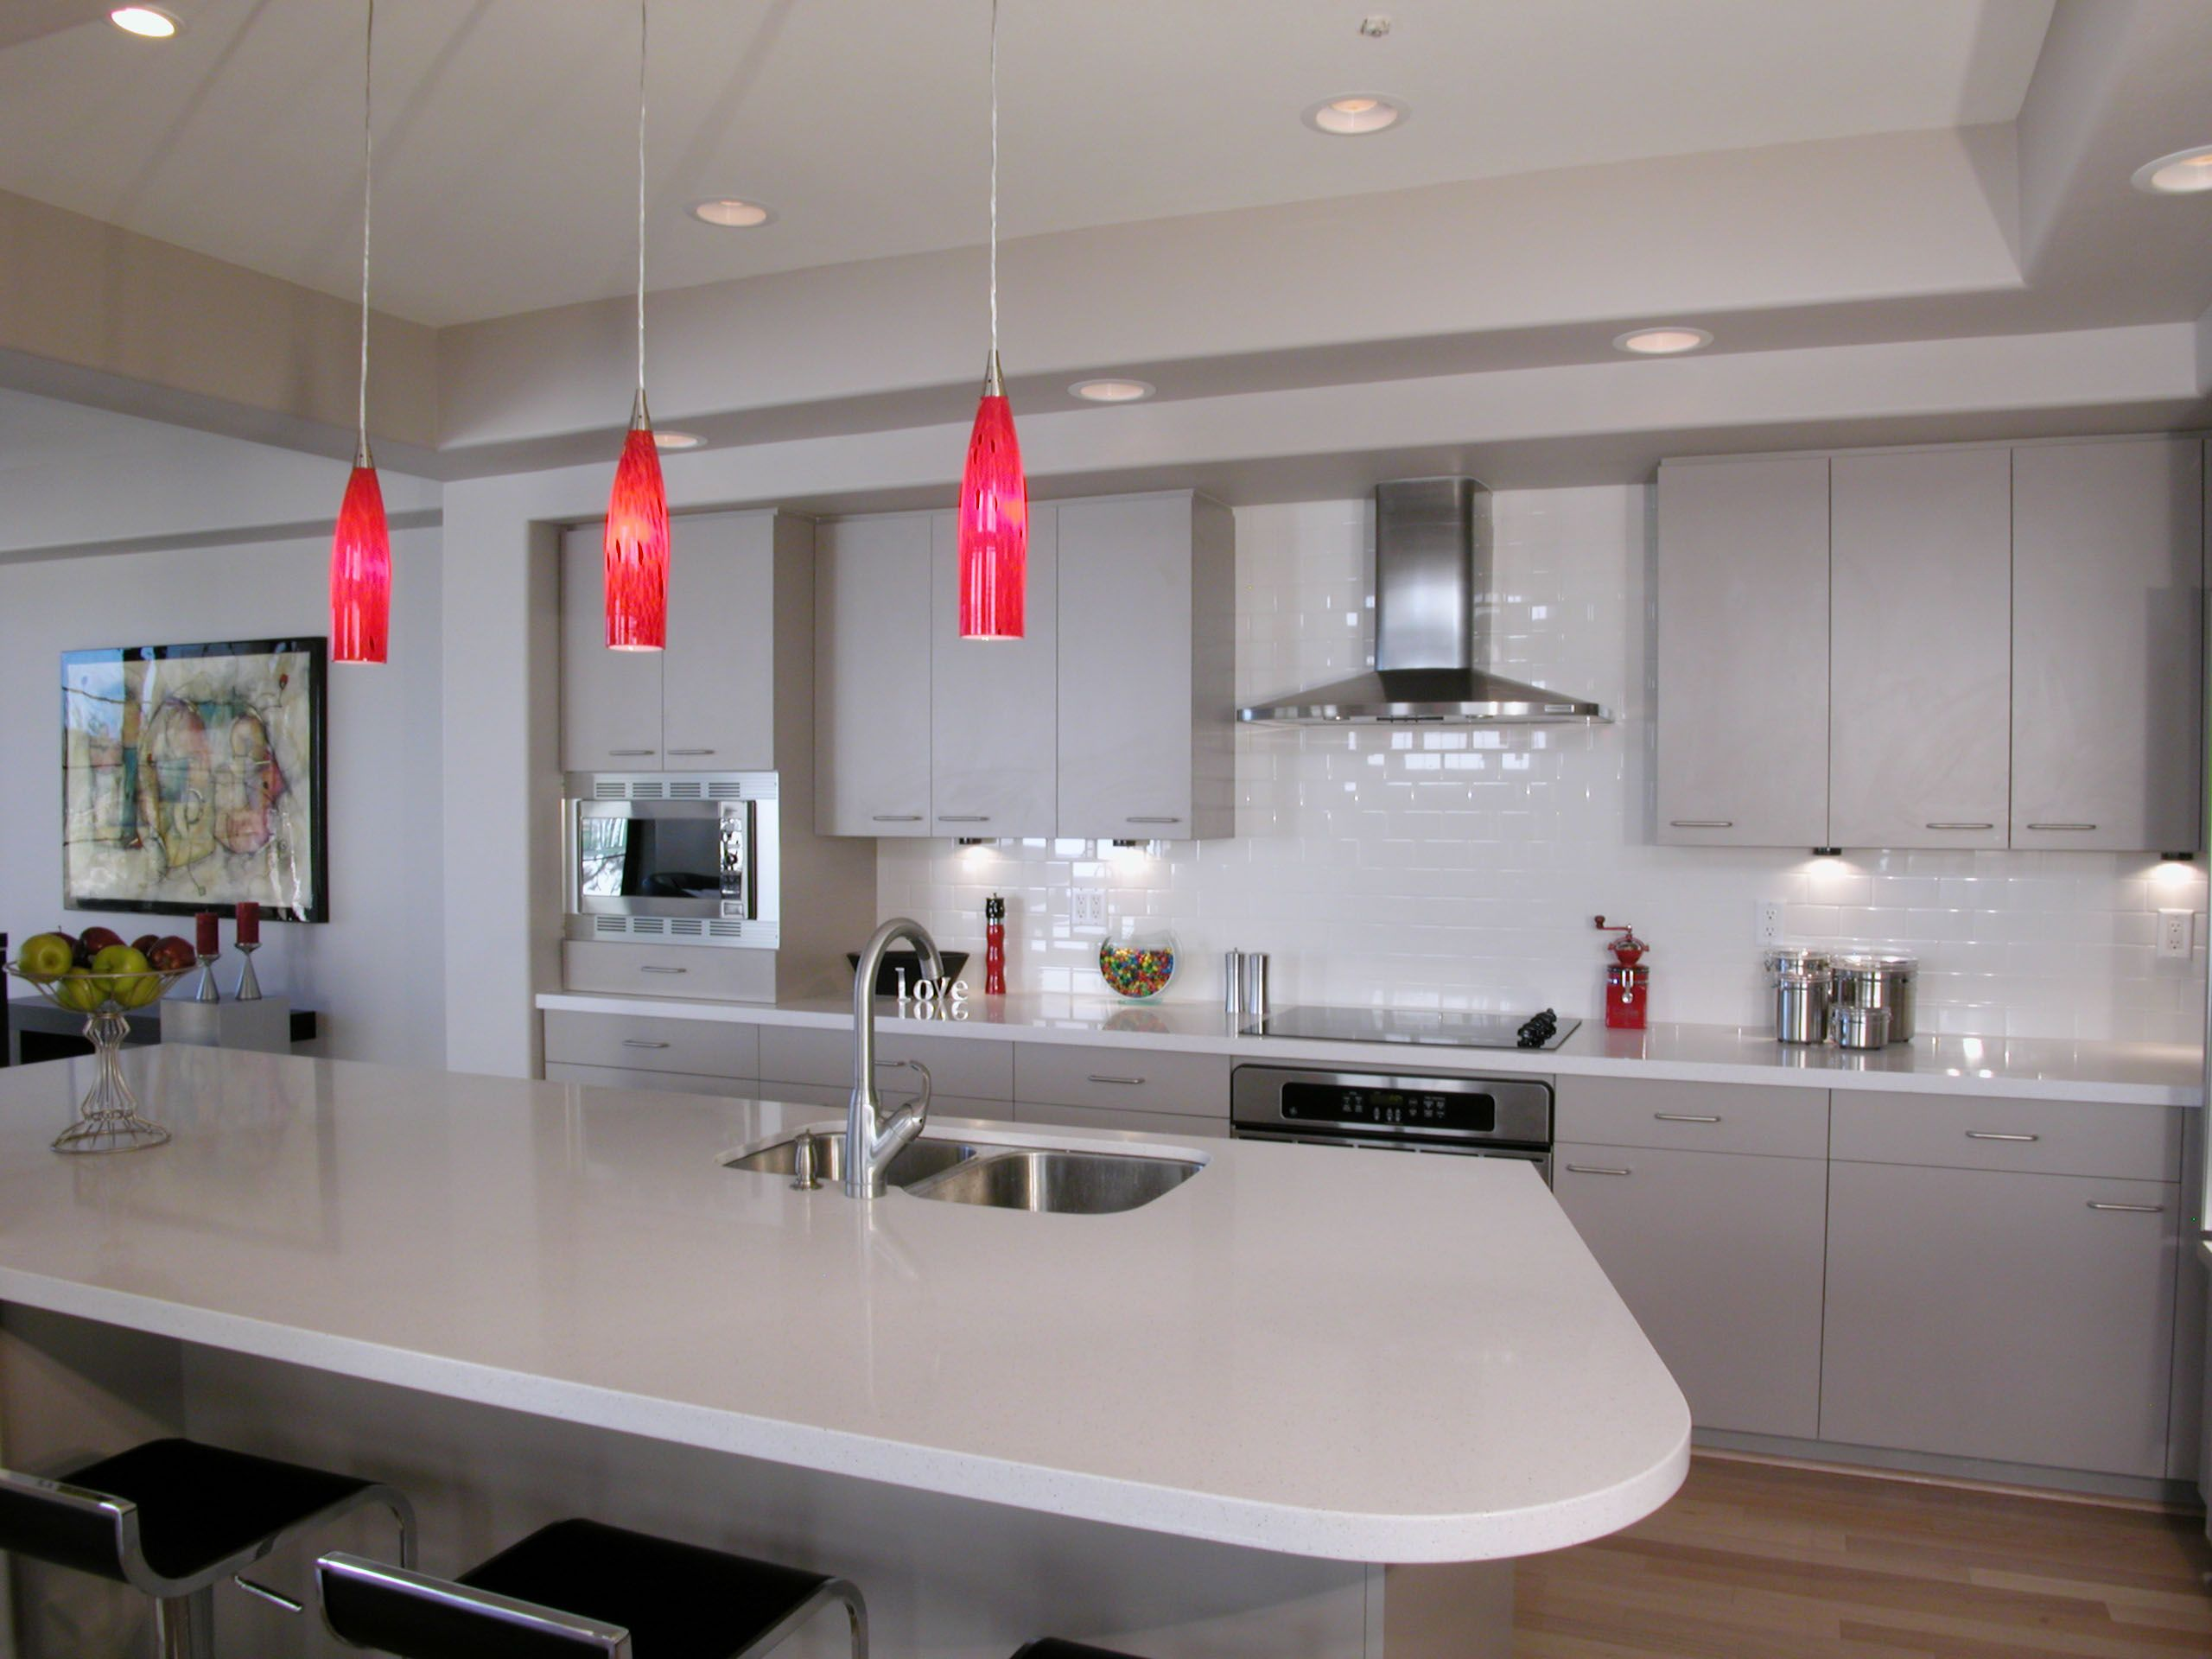 Red Pendant Lights For Kitchen Cocinas Con Falso Plafon Buscar Con Google Cocinas Pinterest